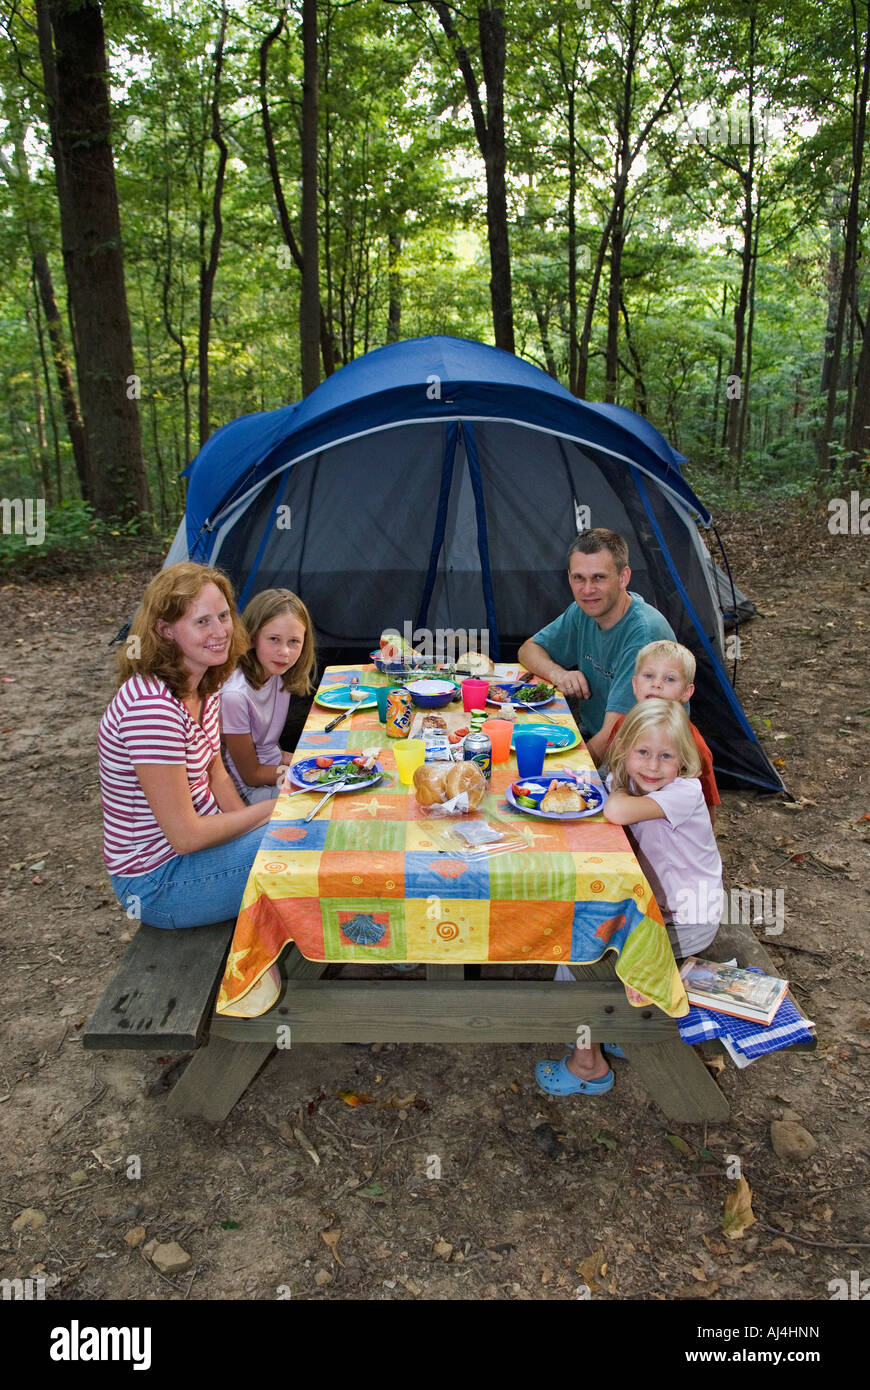 Camping Family Eating Dinner At Picnic Table With Tent In The Background OBannon Woods State Park Indiana